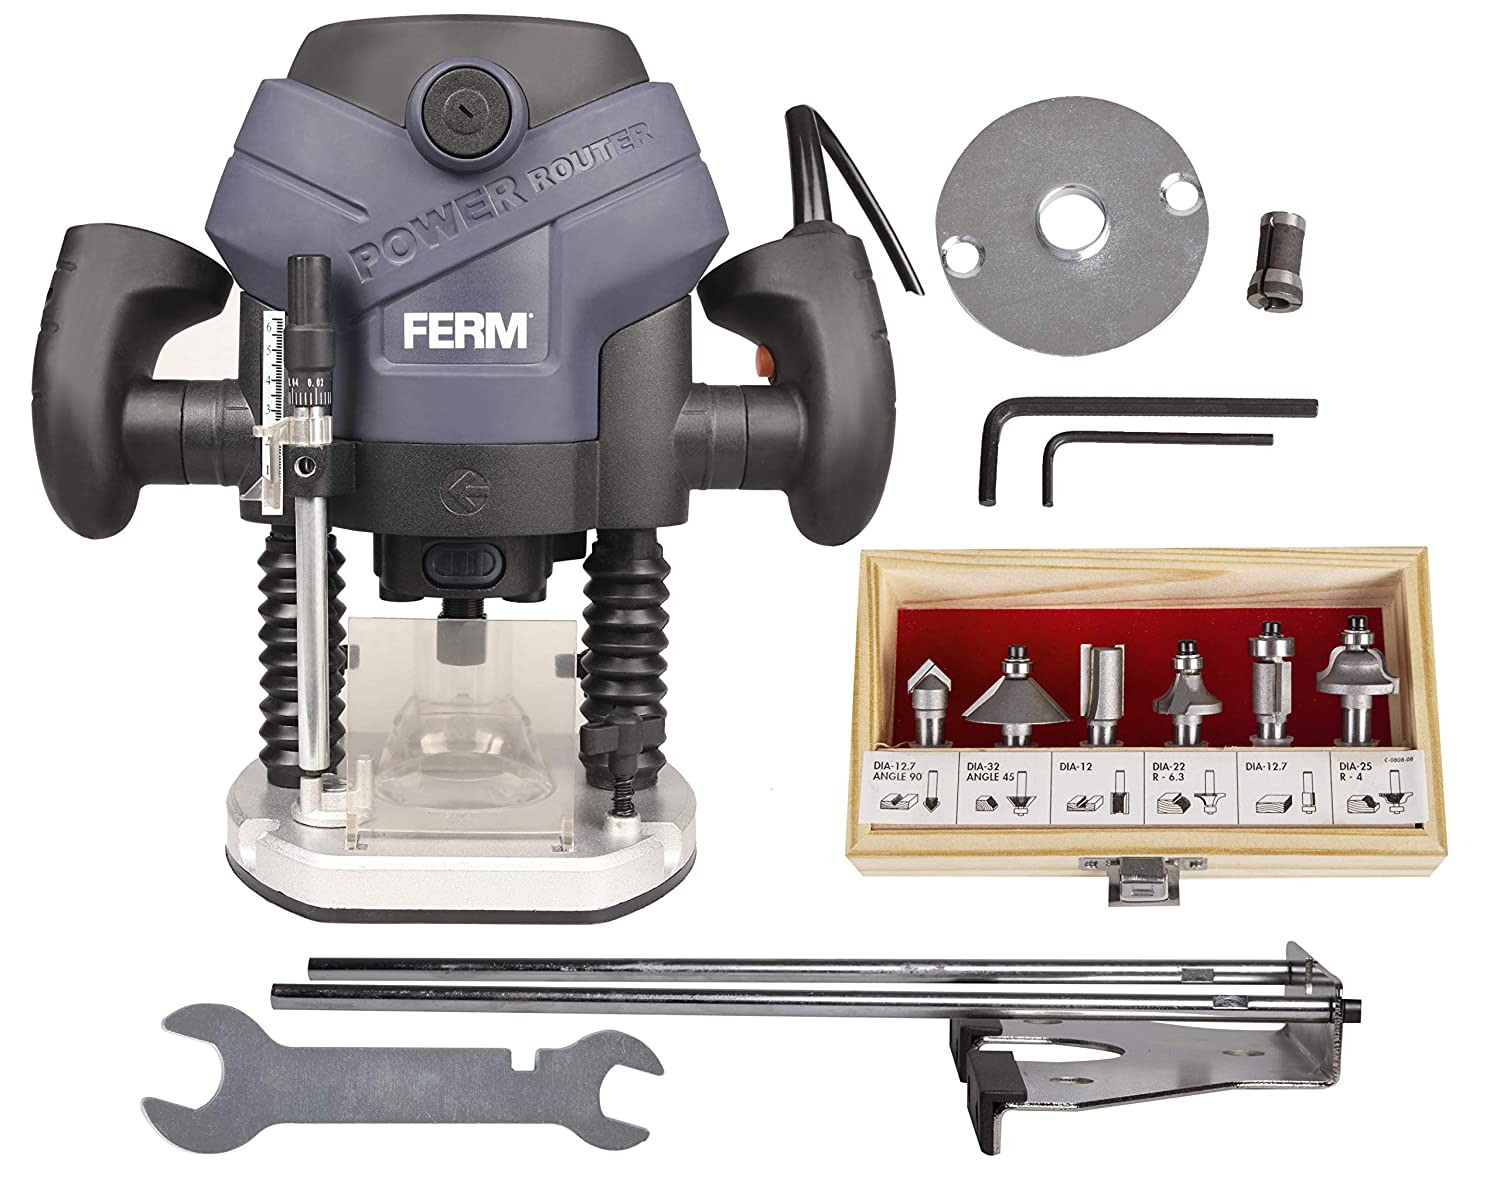 FERM PRM1015 - precisionRouter - Plunge Router - 1300W - 6-8mm -  LED-Worklight - Dust Extraction - With Parallel Guide, Template Guide and 6  Router Bits: ...